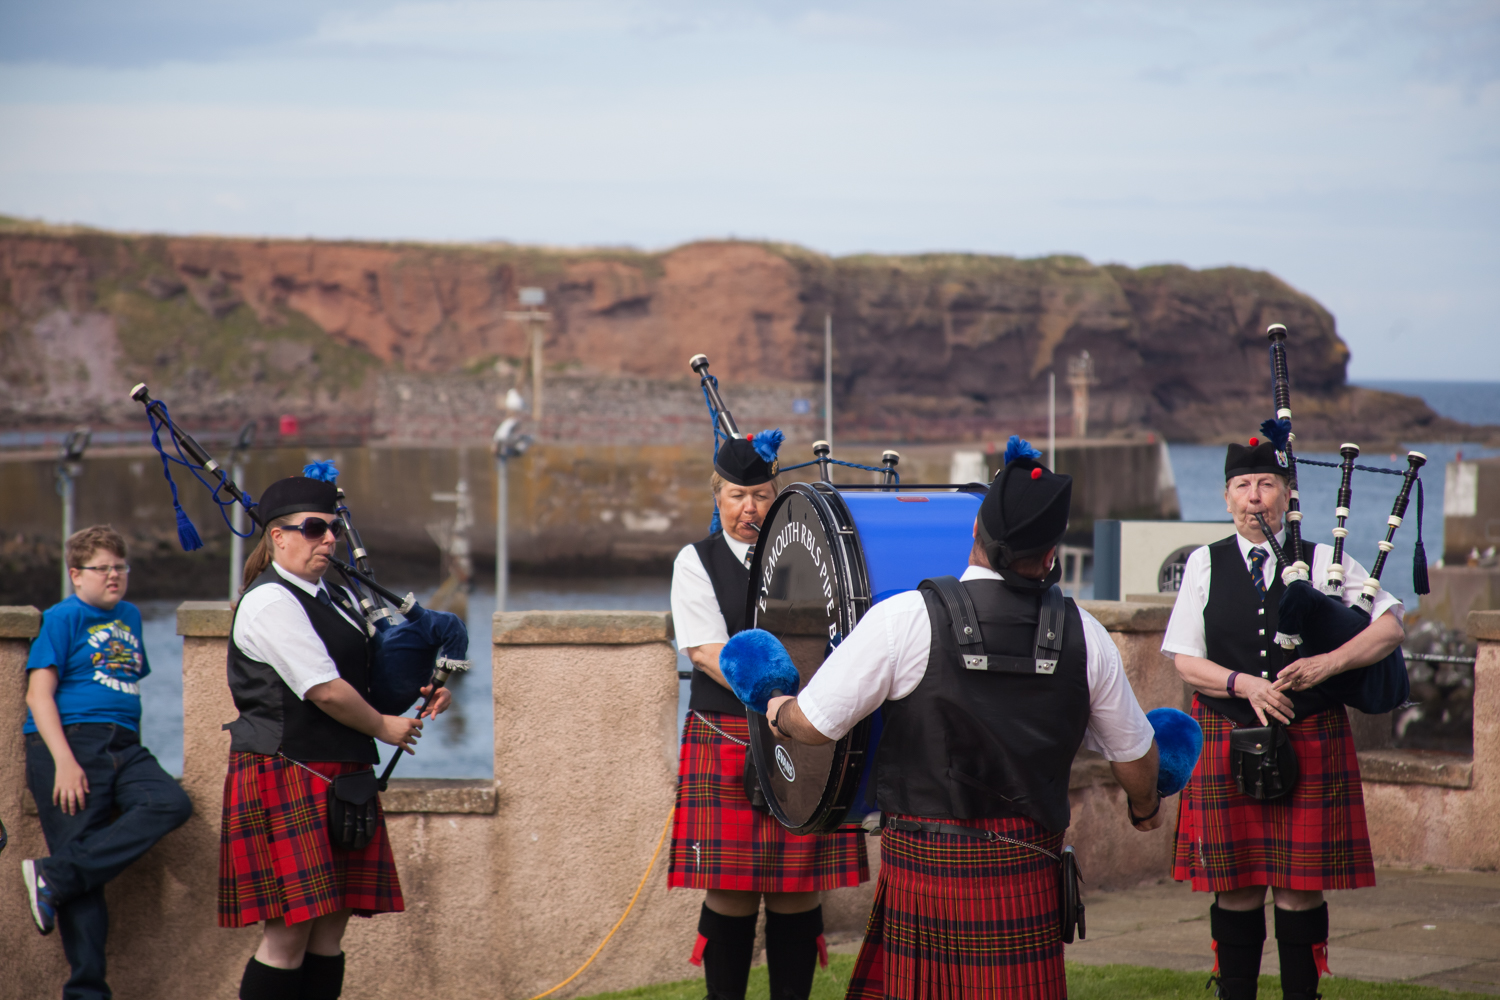 PICTORIAL_BERWICK_eyemouth-gunsgreen-extravaganza-photography-entertainment-party-event-photographer-harbour-gary-dunn-dancers-stilts-performances-speeches-day-out-summer-4543.jpg